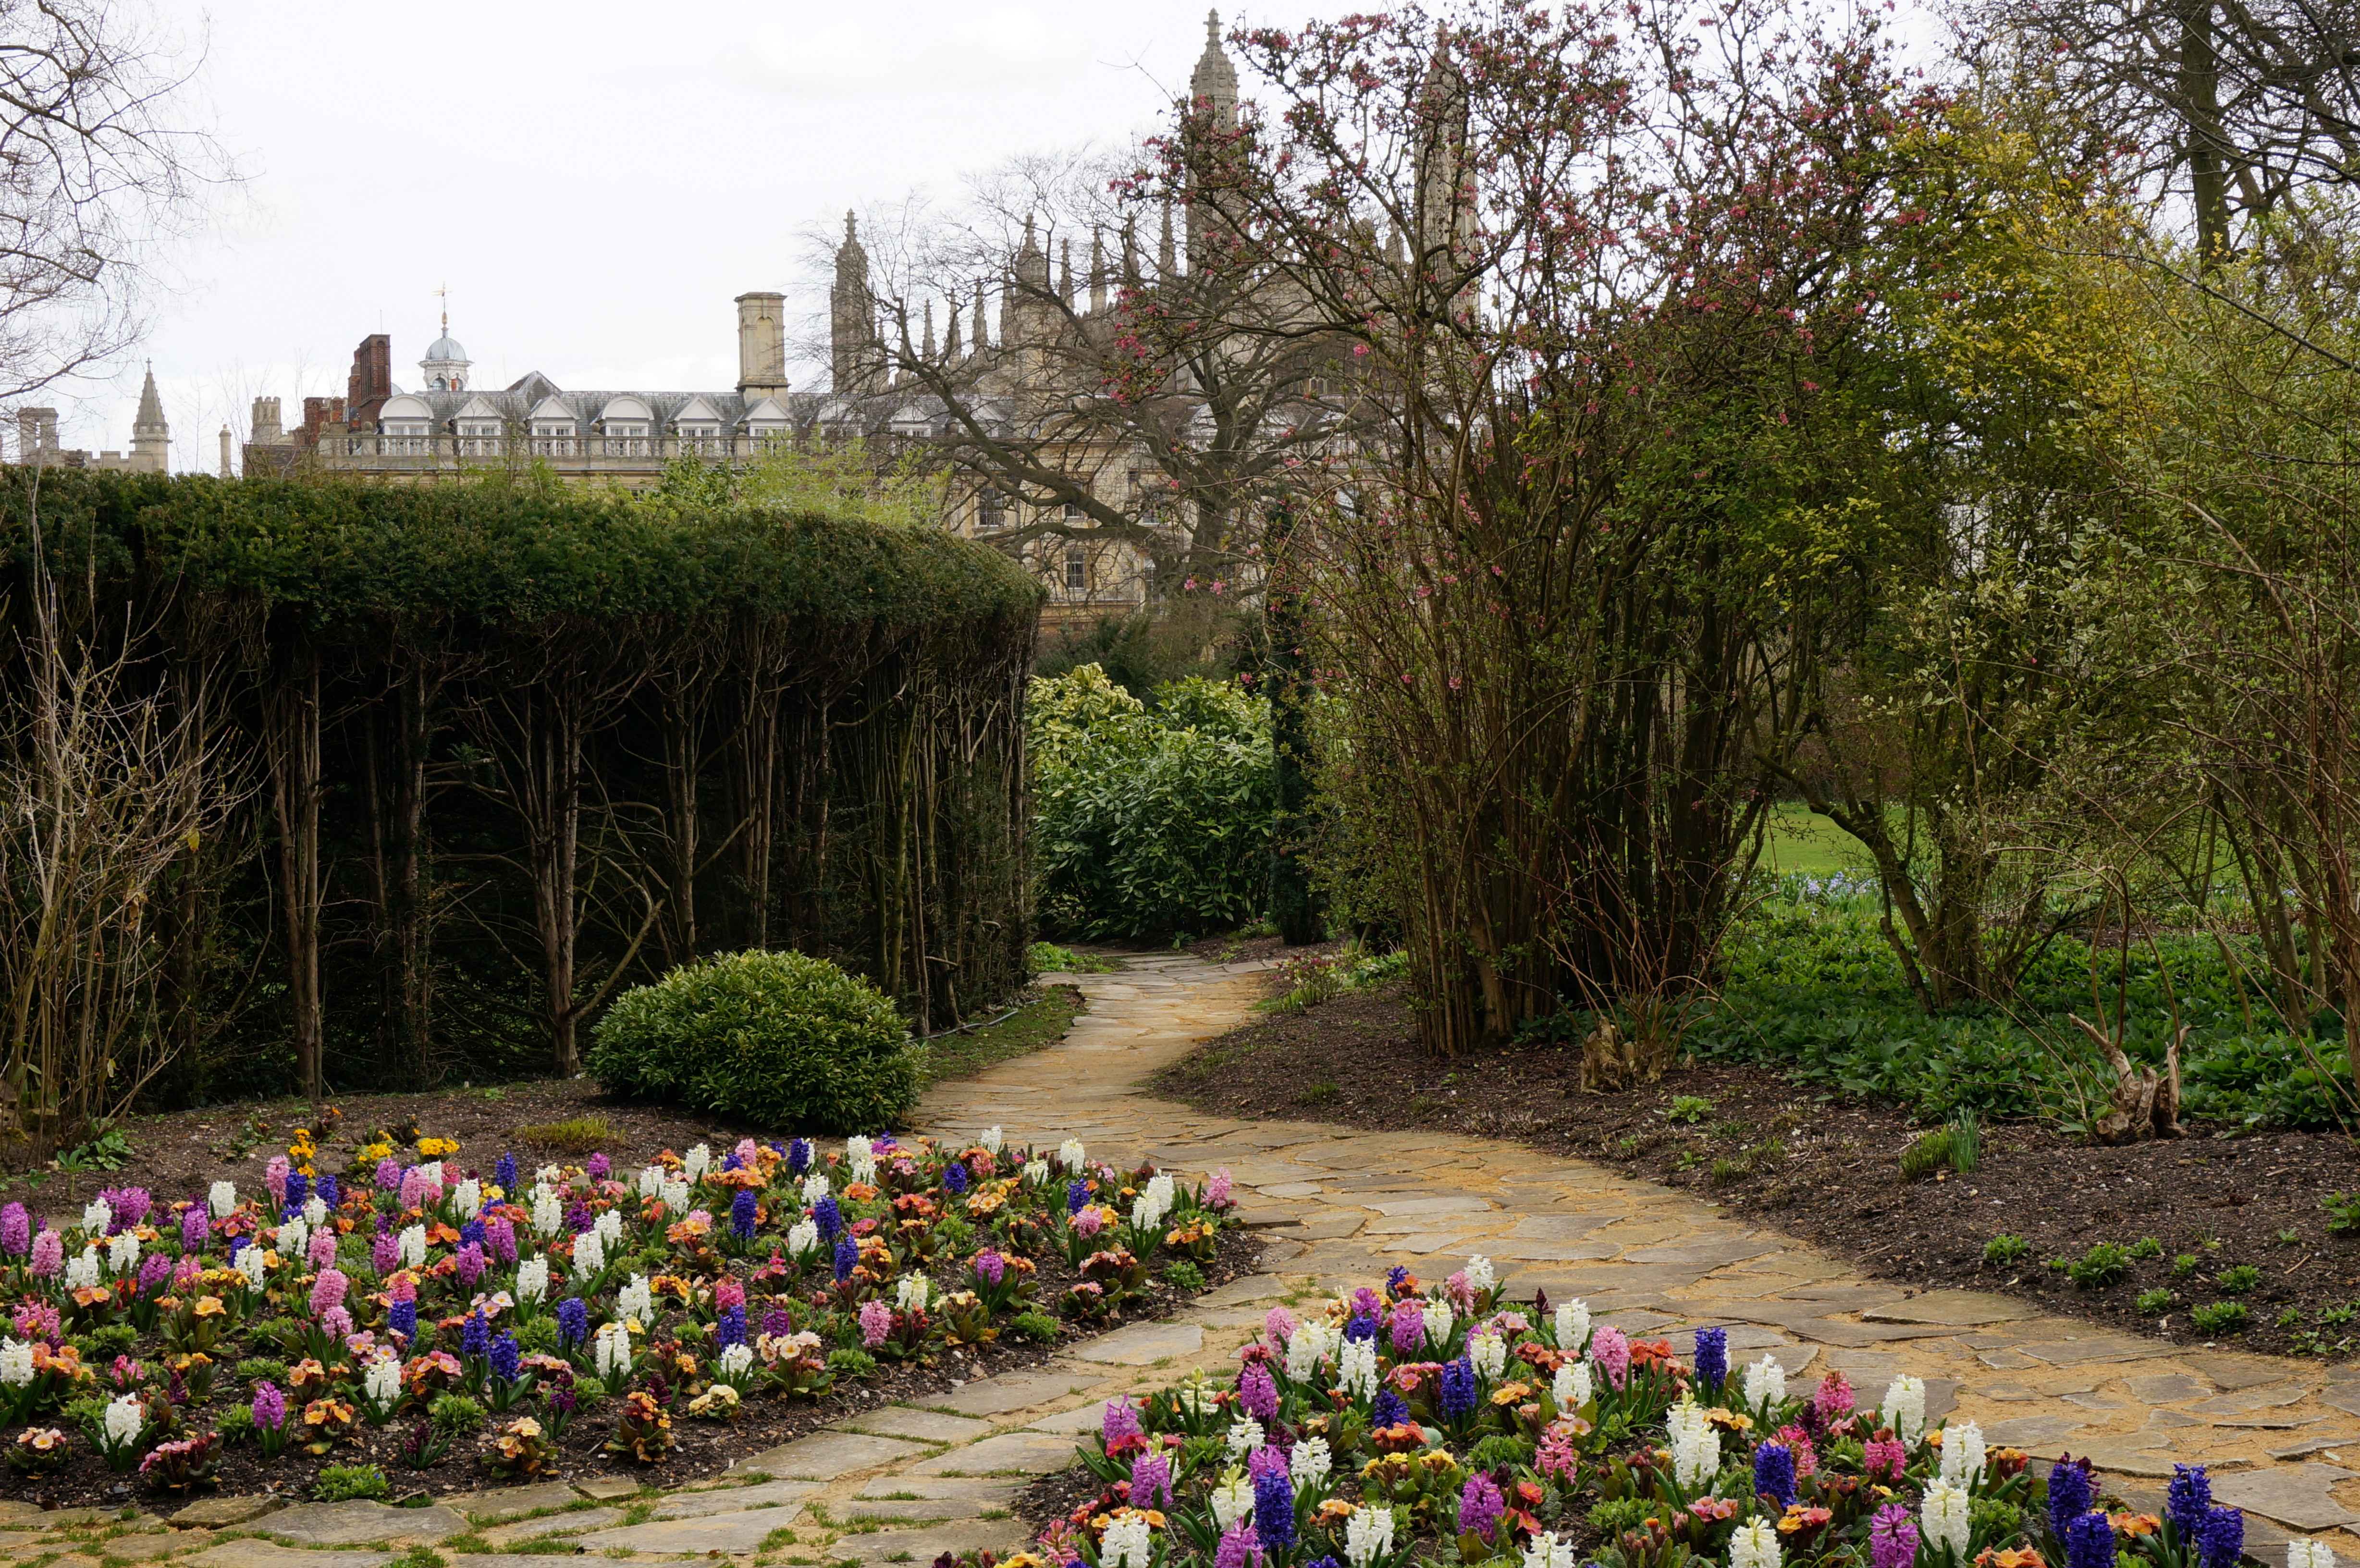 Clare College Gardens – Travel with Intent